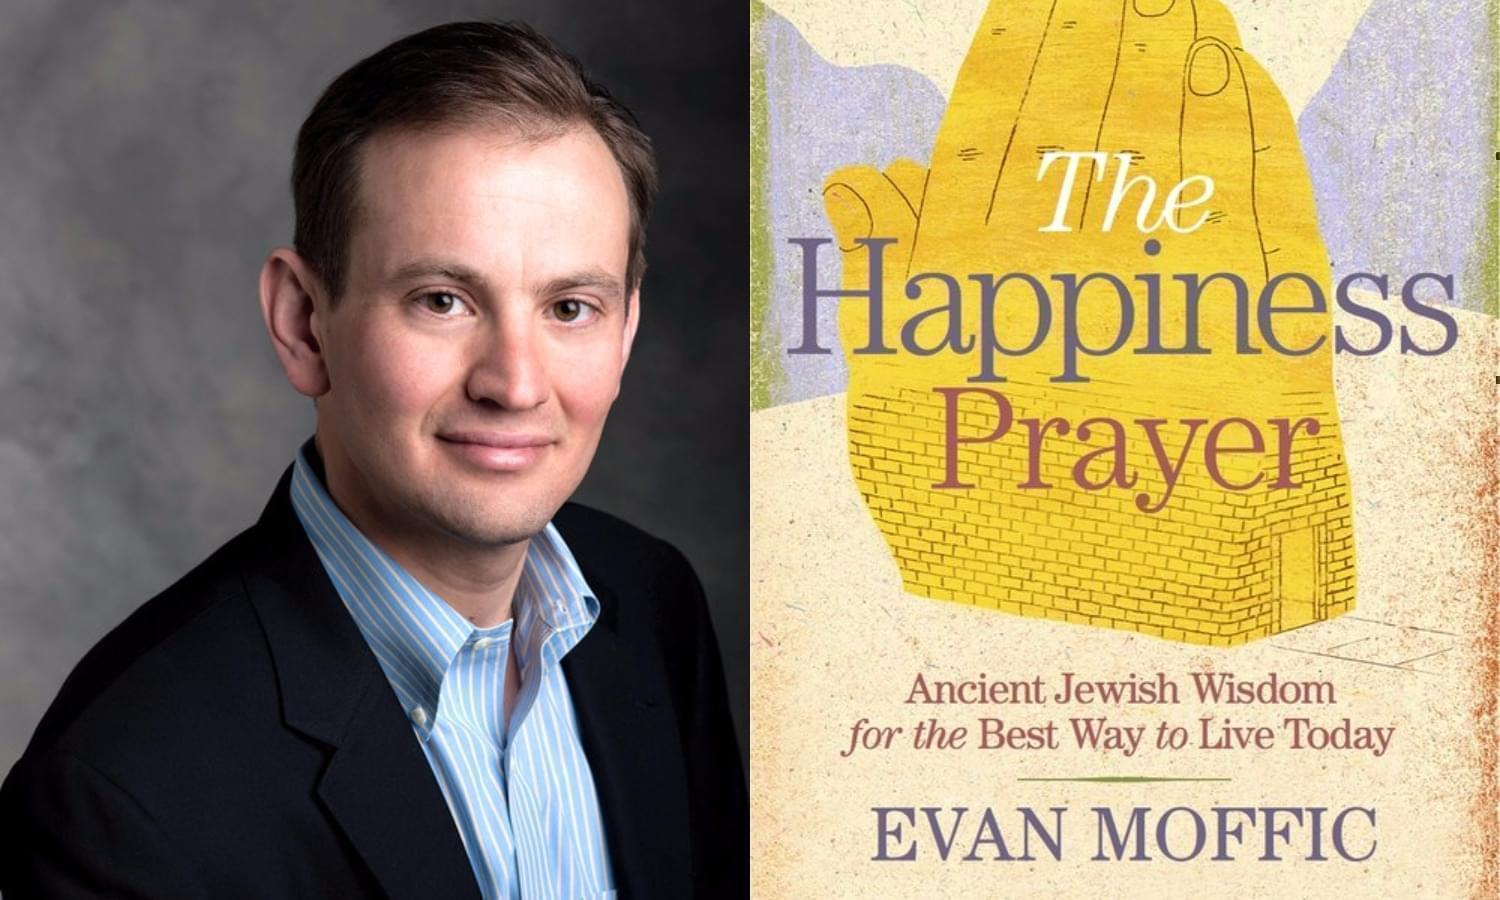 Rabbi Evan Moffic's new book, The Happiness Prayer